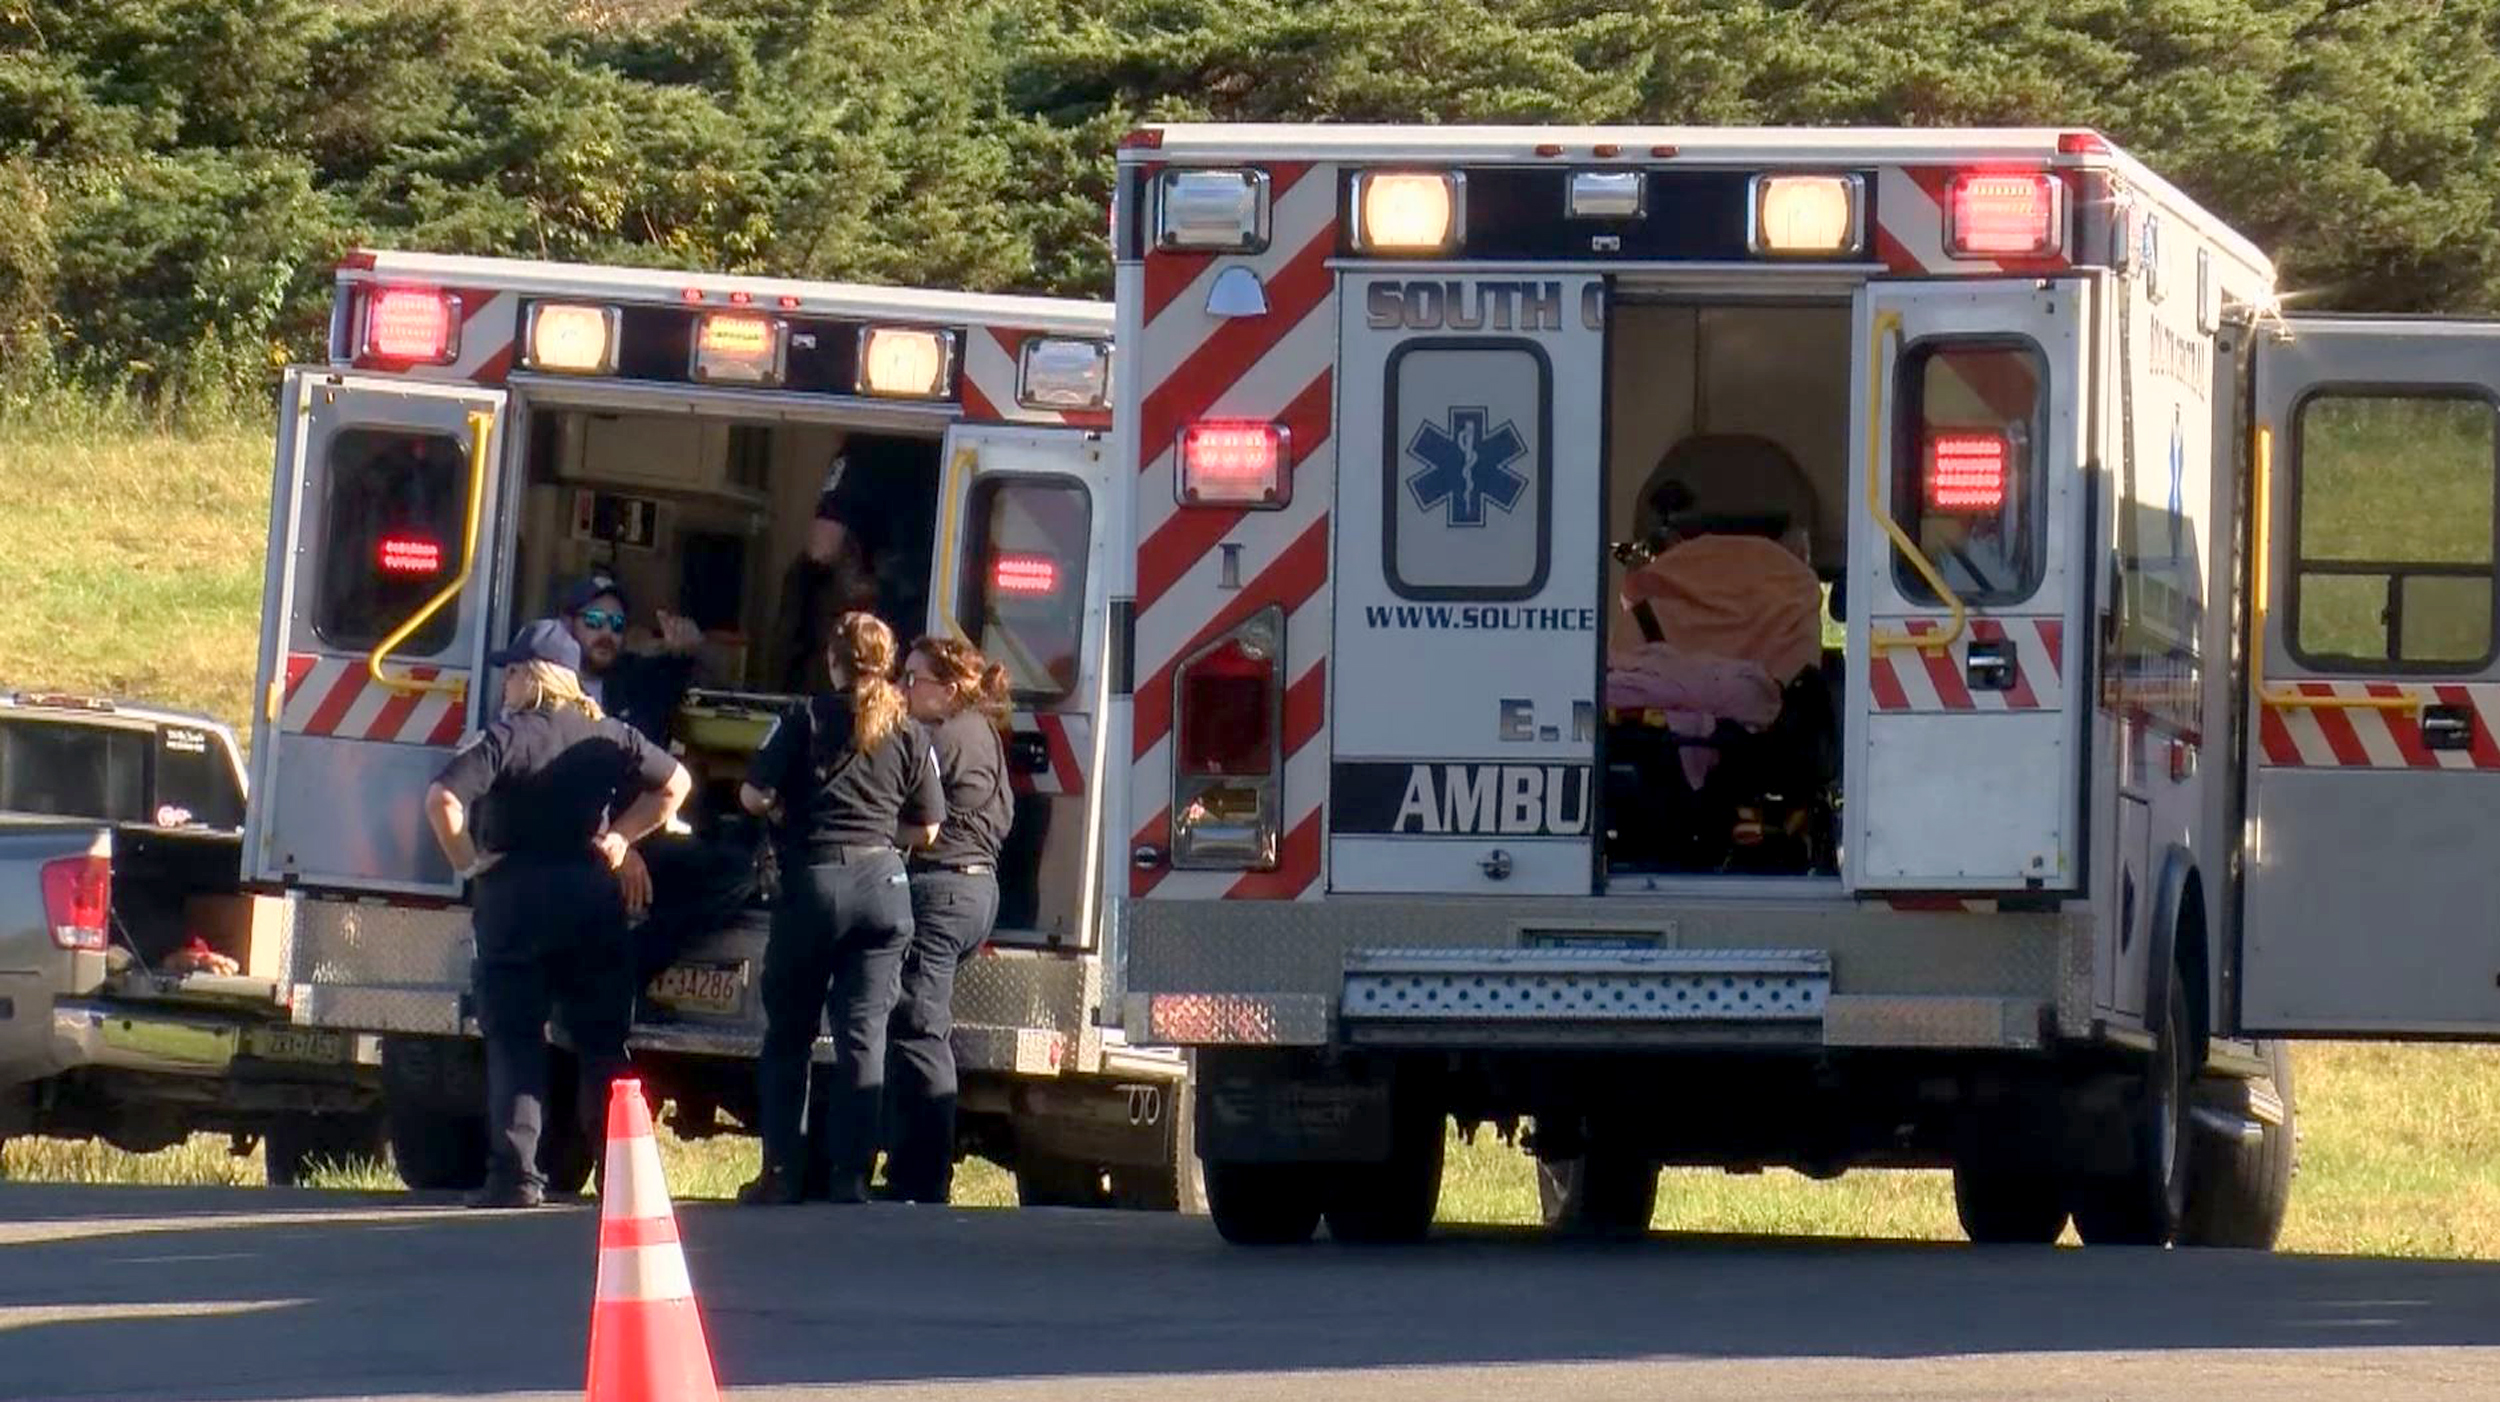 Bus carrying church youths crashes, injuring more than 30 in Pennsylvania